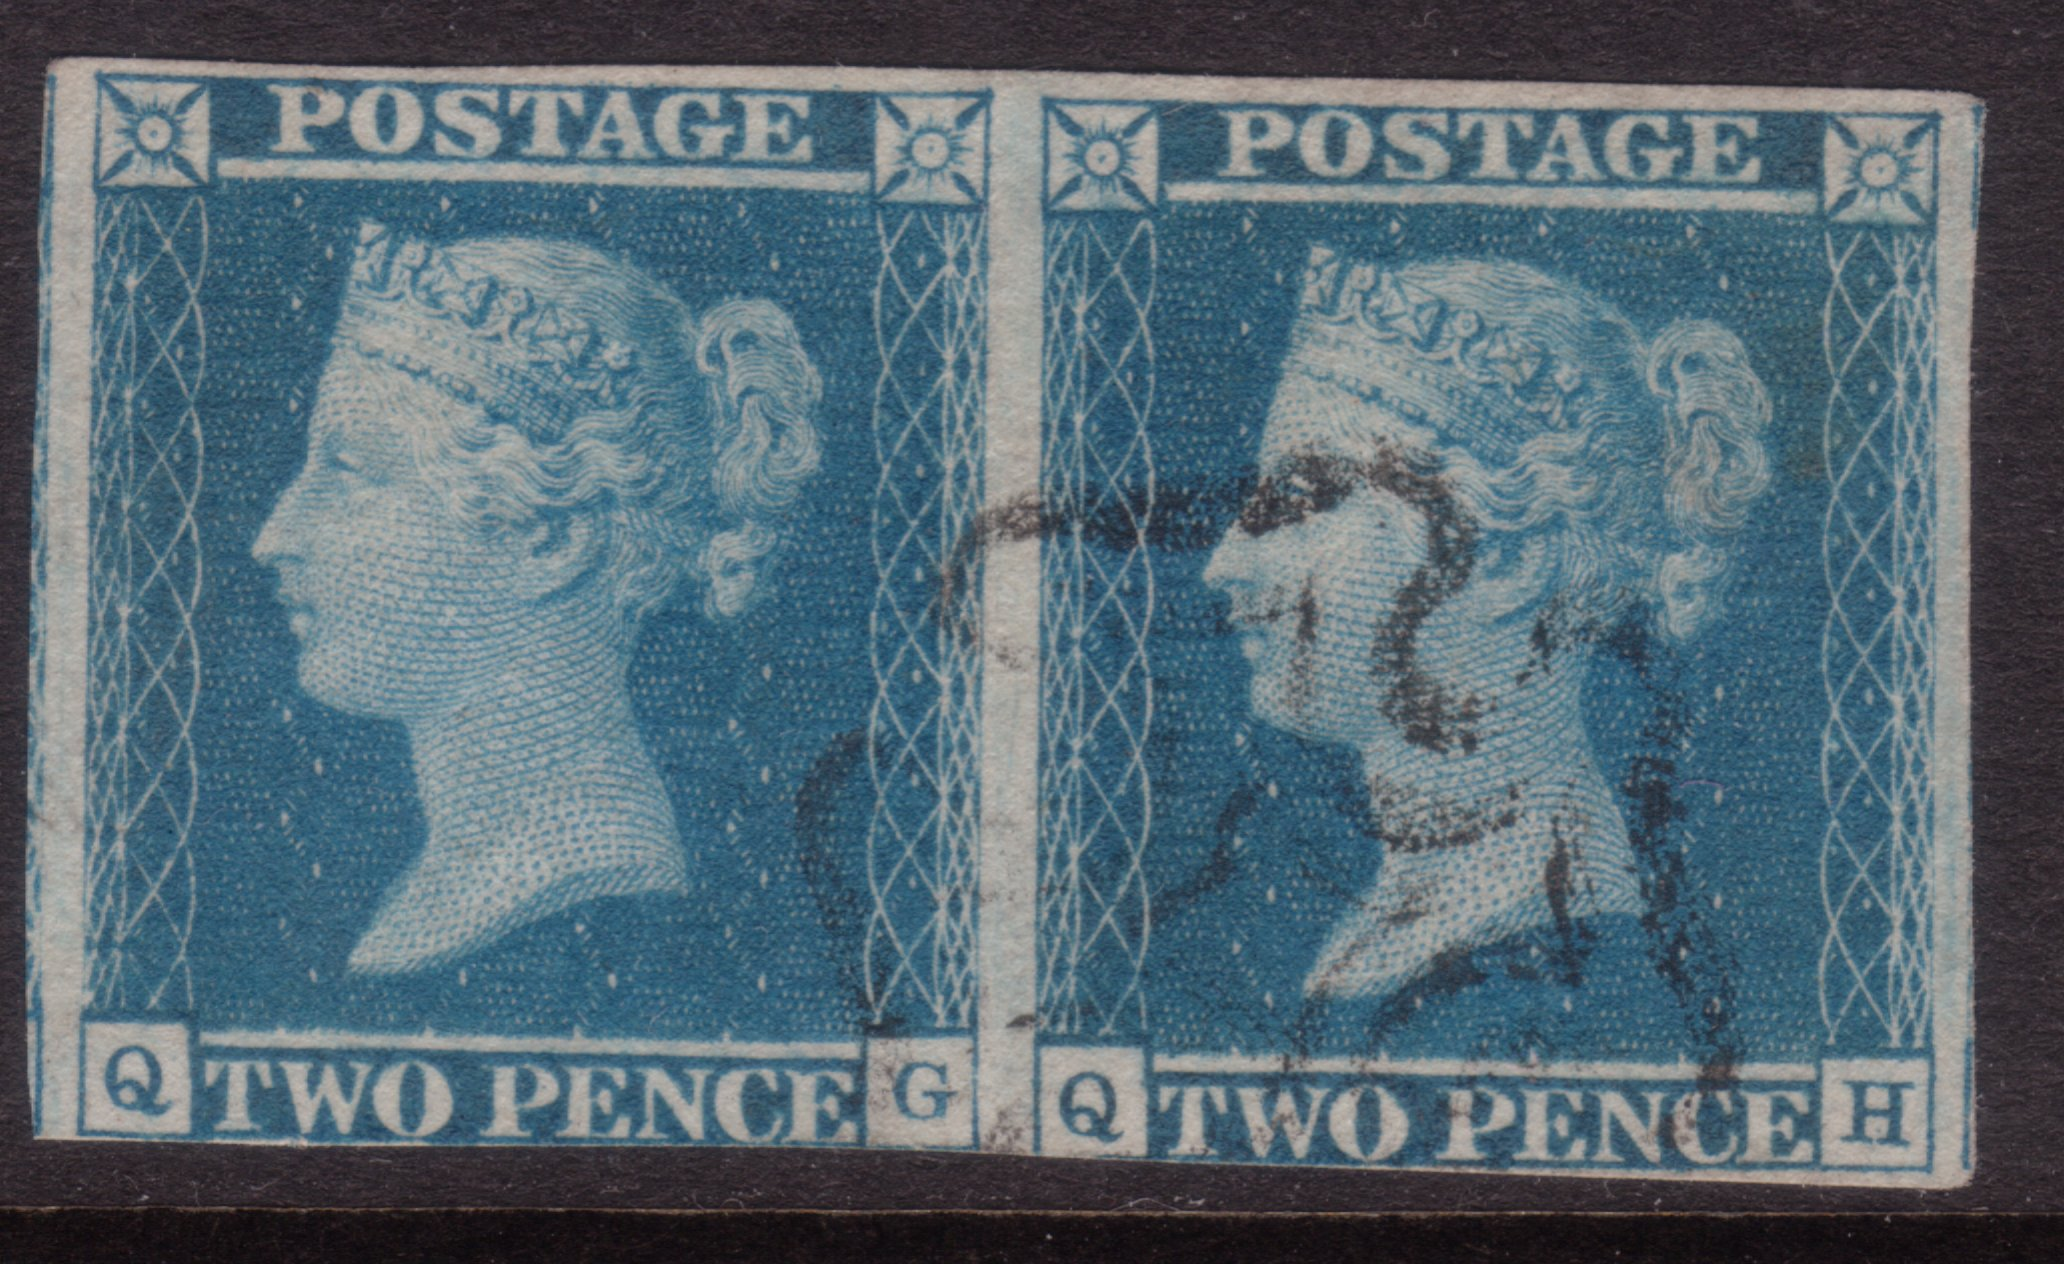 1841 2d Blue Plate 3 Cancel Contrary to Regulations - SOLD